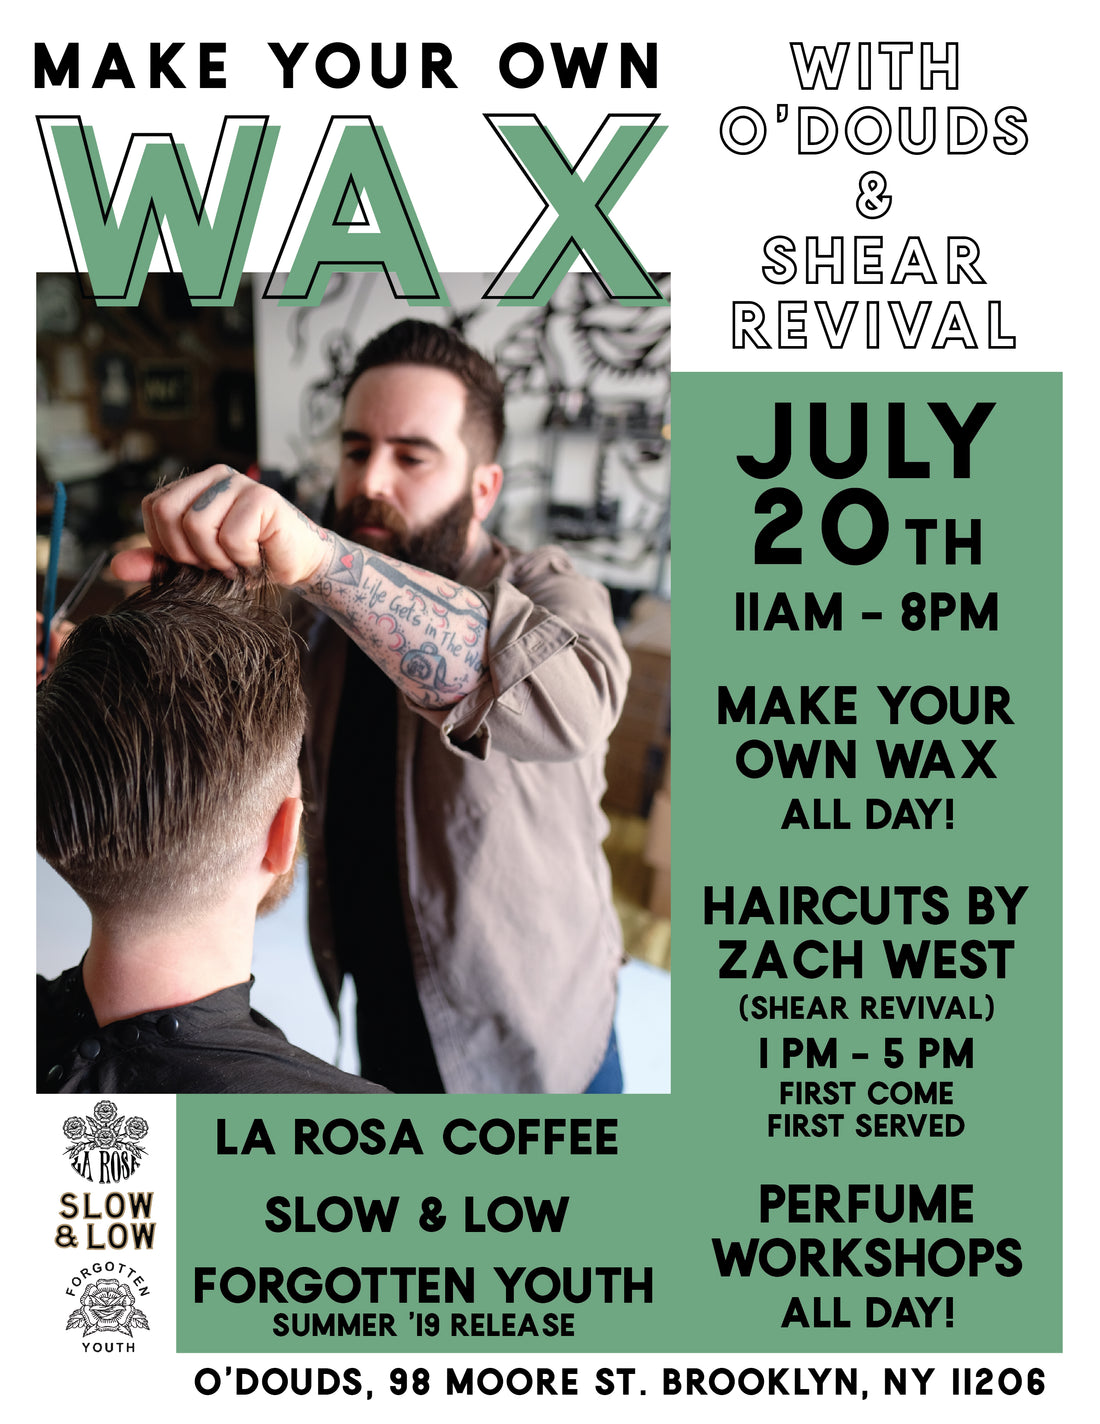 Make your own WAX!